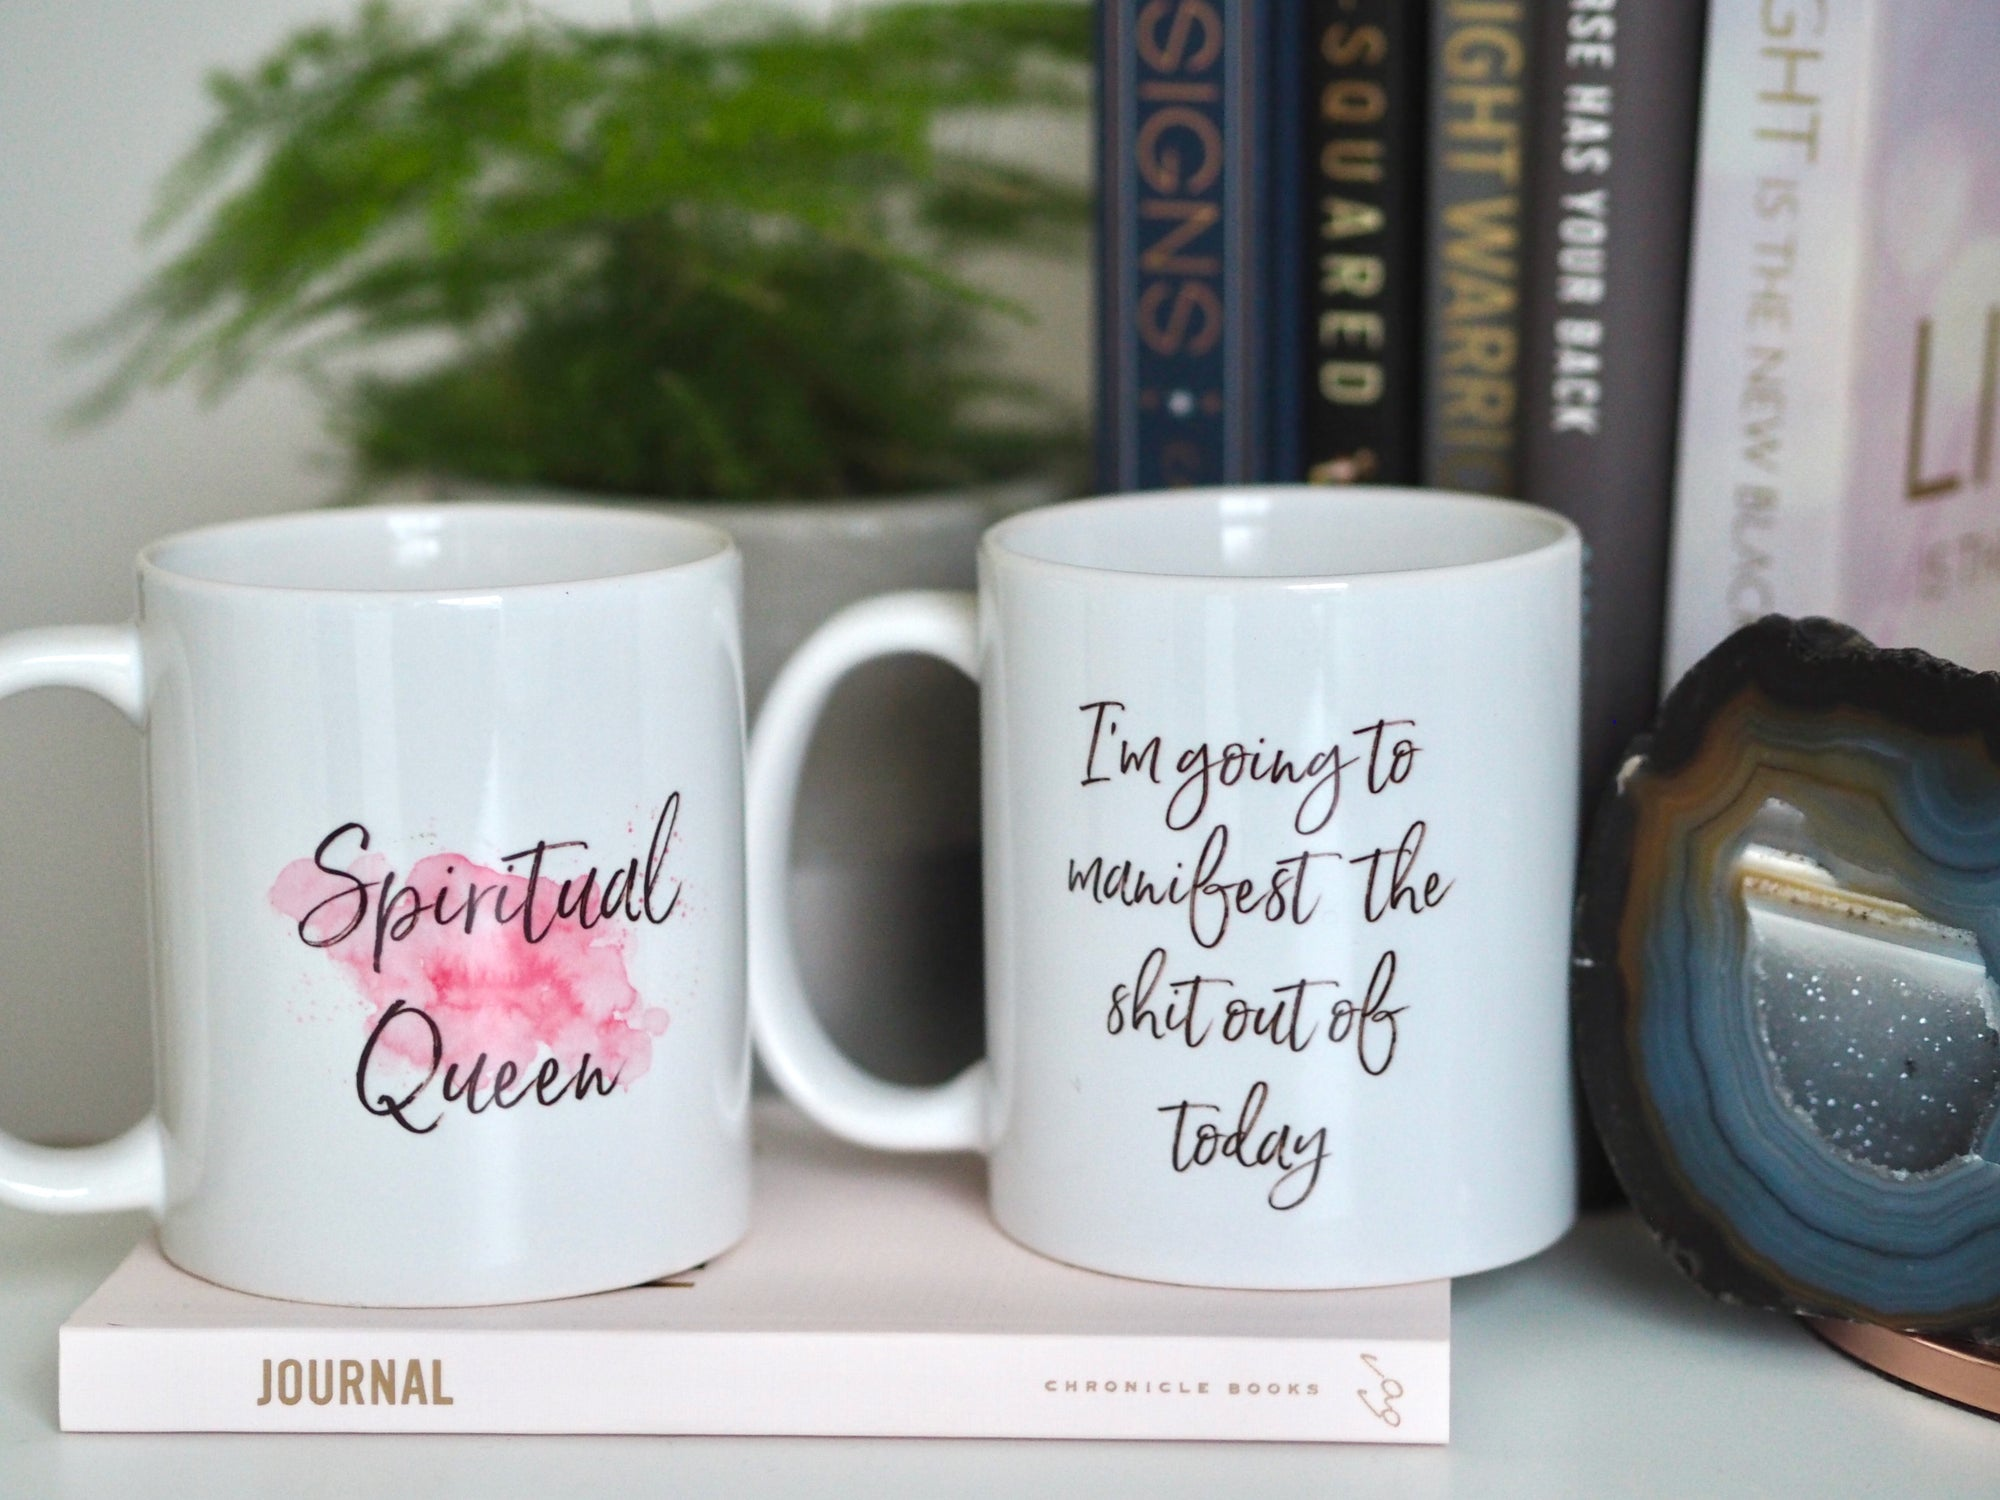 LAW OF ATTRACTION SLOGAN MUGS | EMMA MUMFORD